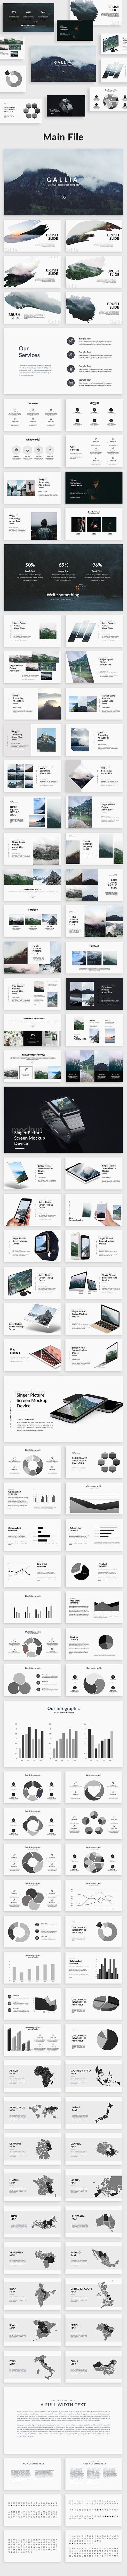 Gallia Creative Powerpoint Template — PPT #pptxagency presentation #data charts • Download ➝ https://graphicriver.net/item/gallia-creative-powerpoint-template/19619836?ref=pxcr